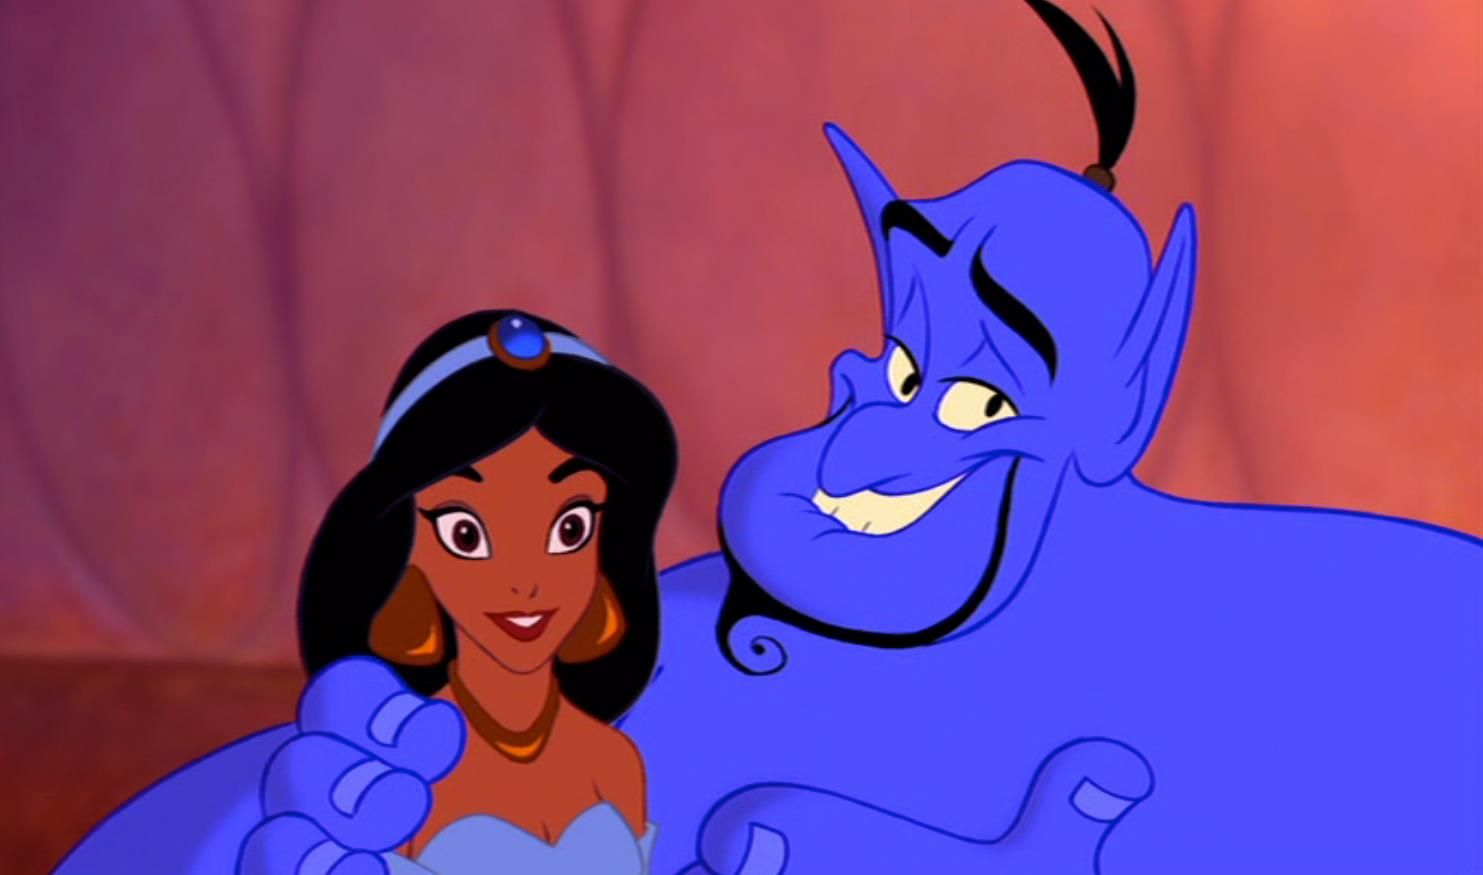 """Al, you're not gonna find another girl like her in a million years. Believe me, I know. I've looked."" - Genie from Aladdin"